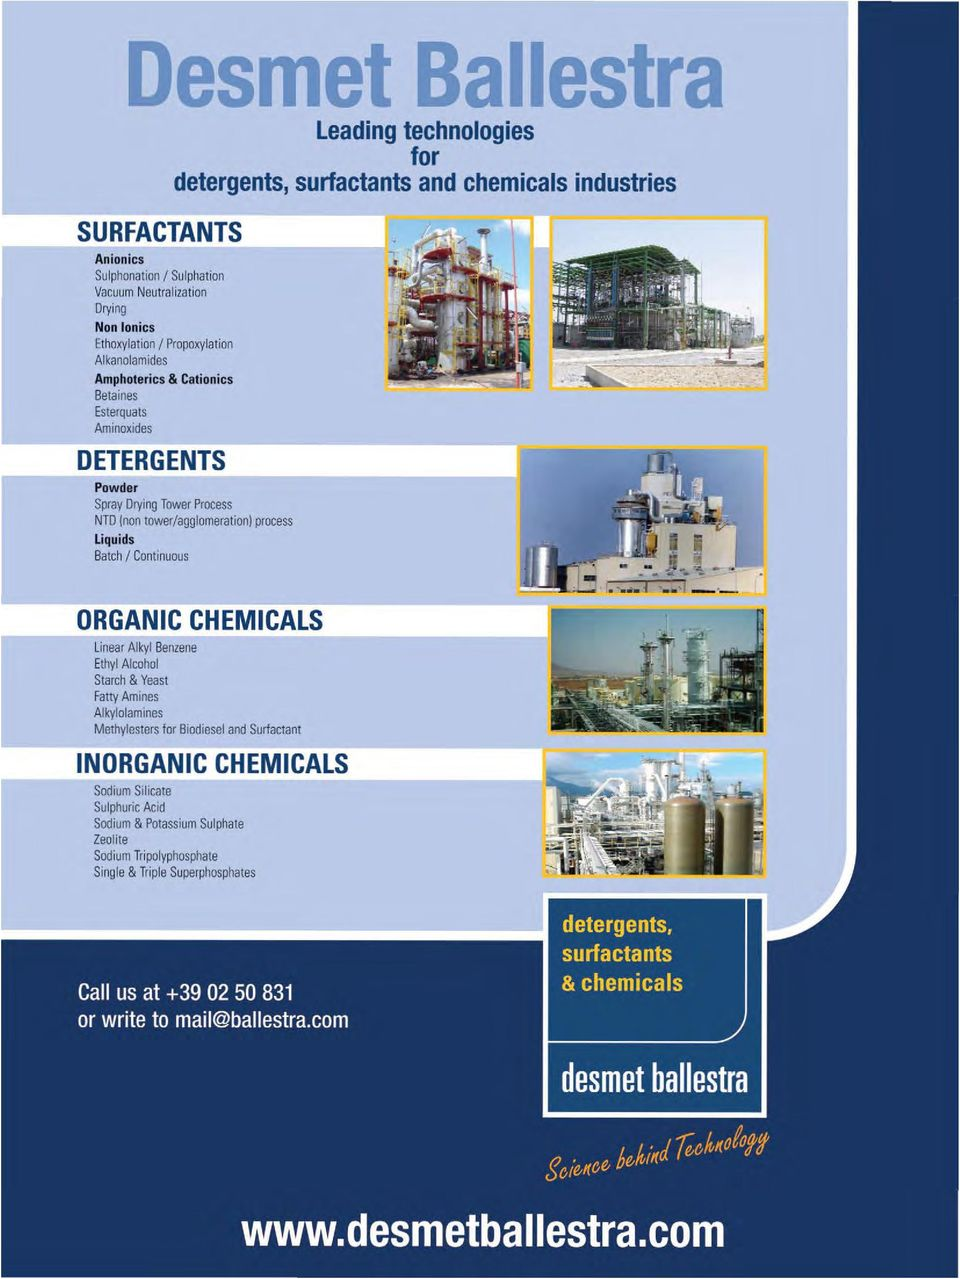 tower/agglomeration) process Liquids Batch I Continuous ORGANIC CHEMICALS Linear Alkyl Benzene Ethyl Alcohol Starch & Yeast Fatty Amines Alkylolamines Methylesters